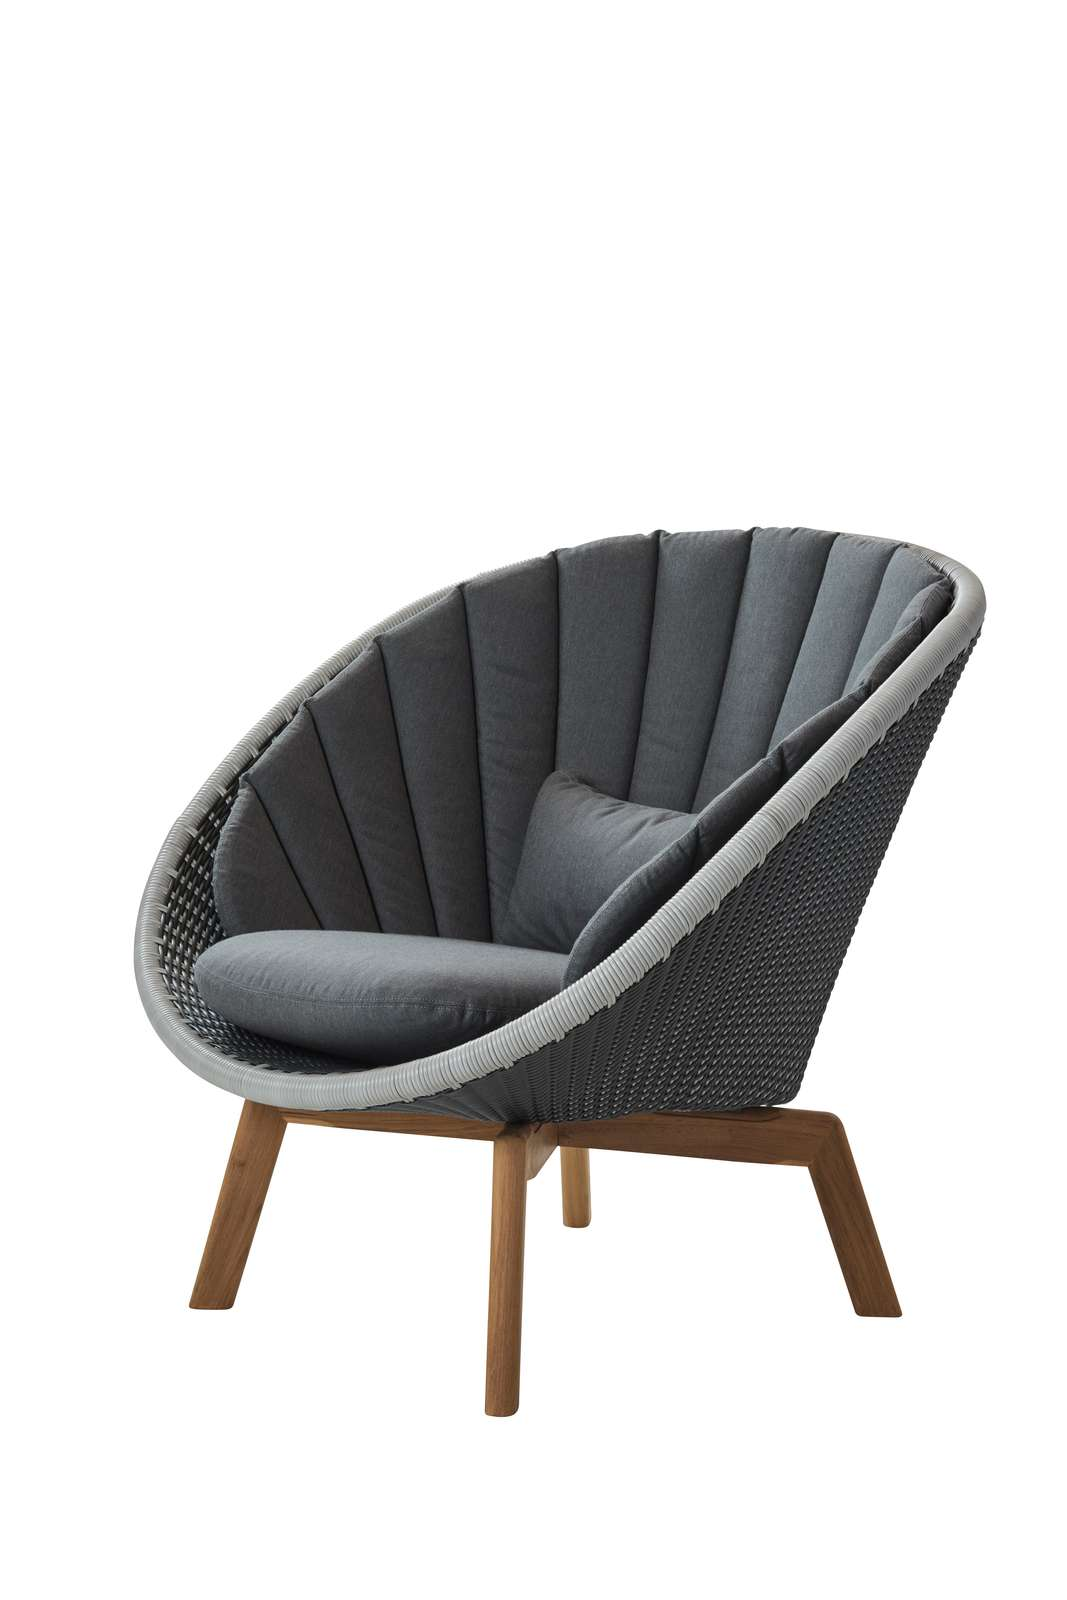 Pleasing Cane Line Peacock Outdoor Lounge Chair Andrewgaddart Wooden Chair Designs For Living Room Andrewgaddartcom